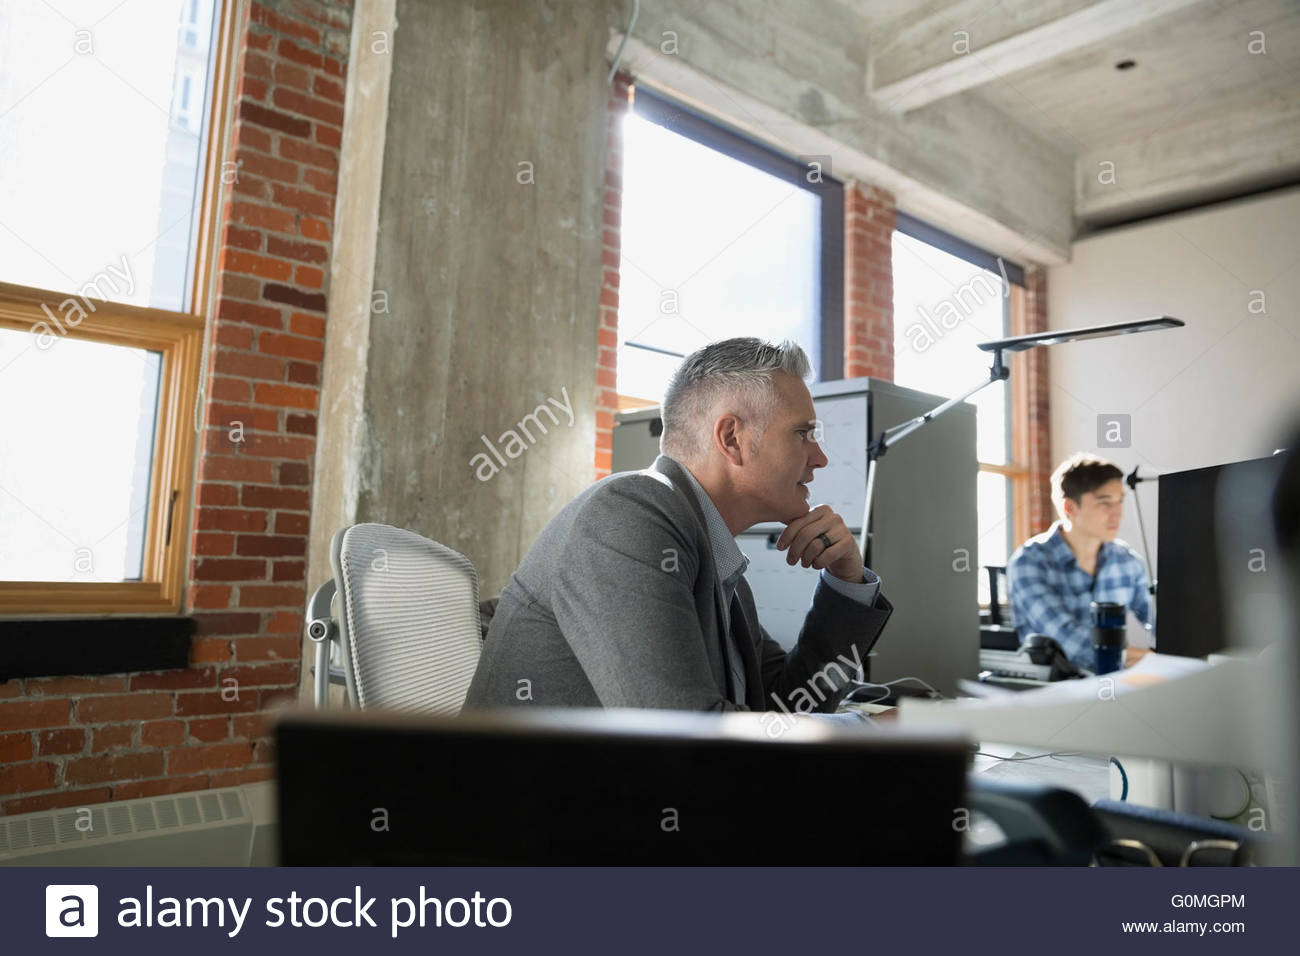 Businessman working at desk in office - Stock Image